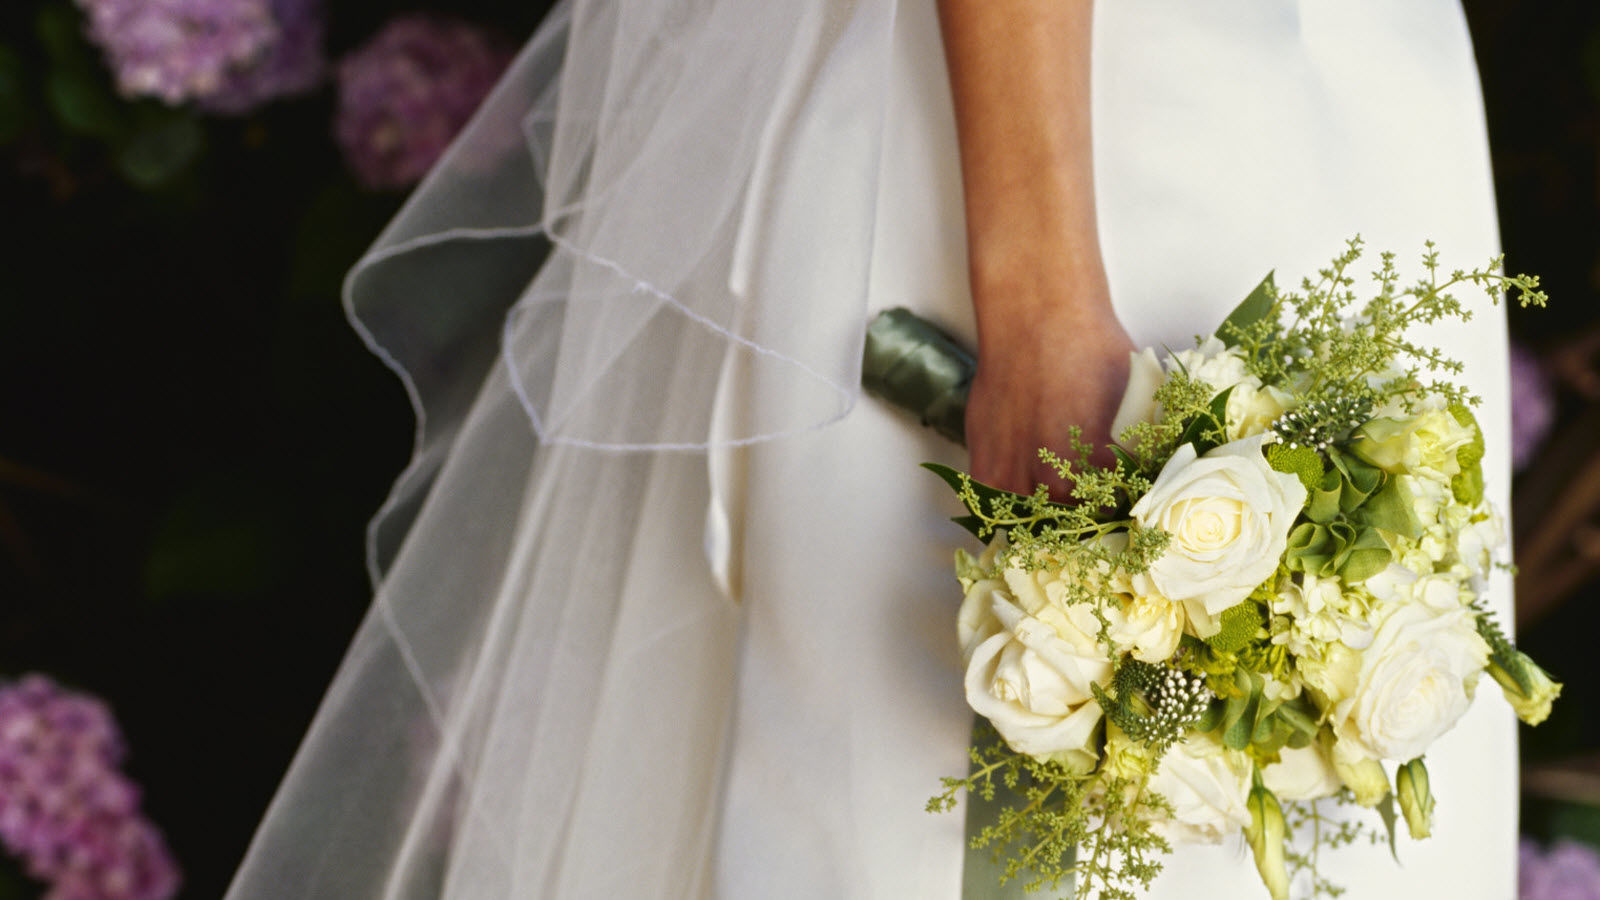 North Toronto Wedding Venues Offer